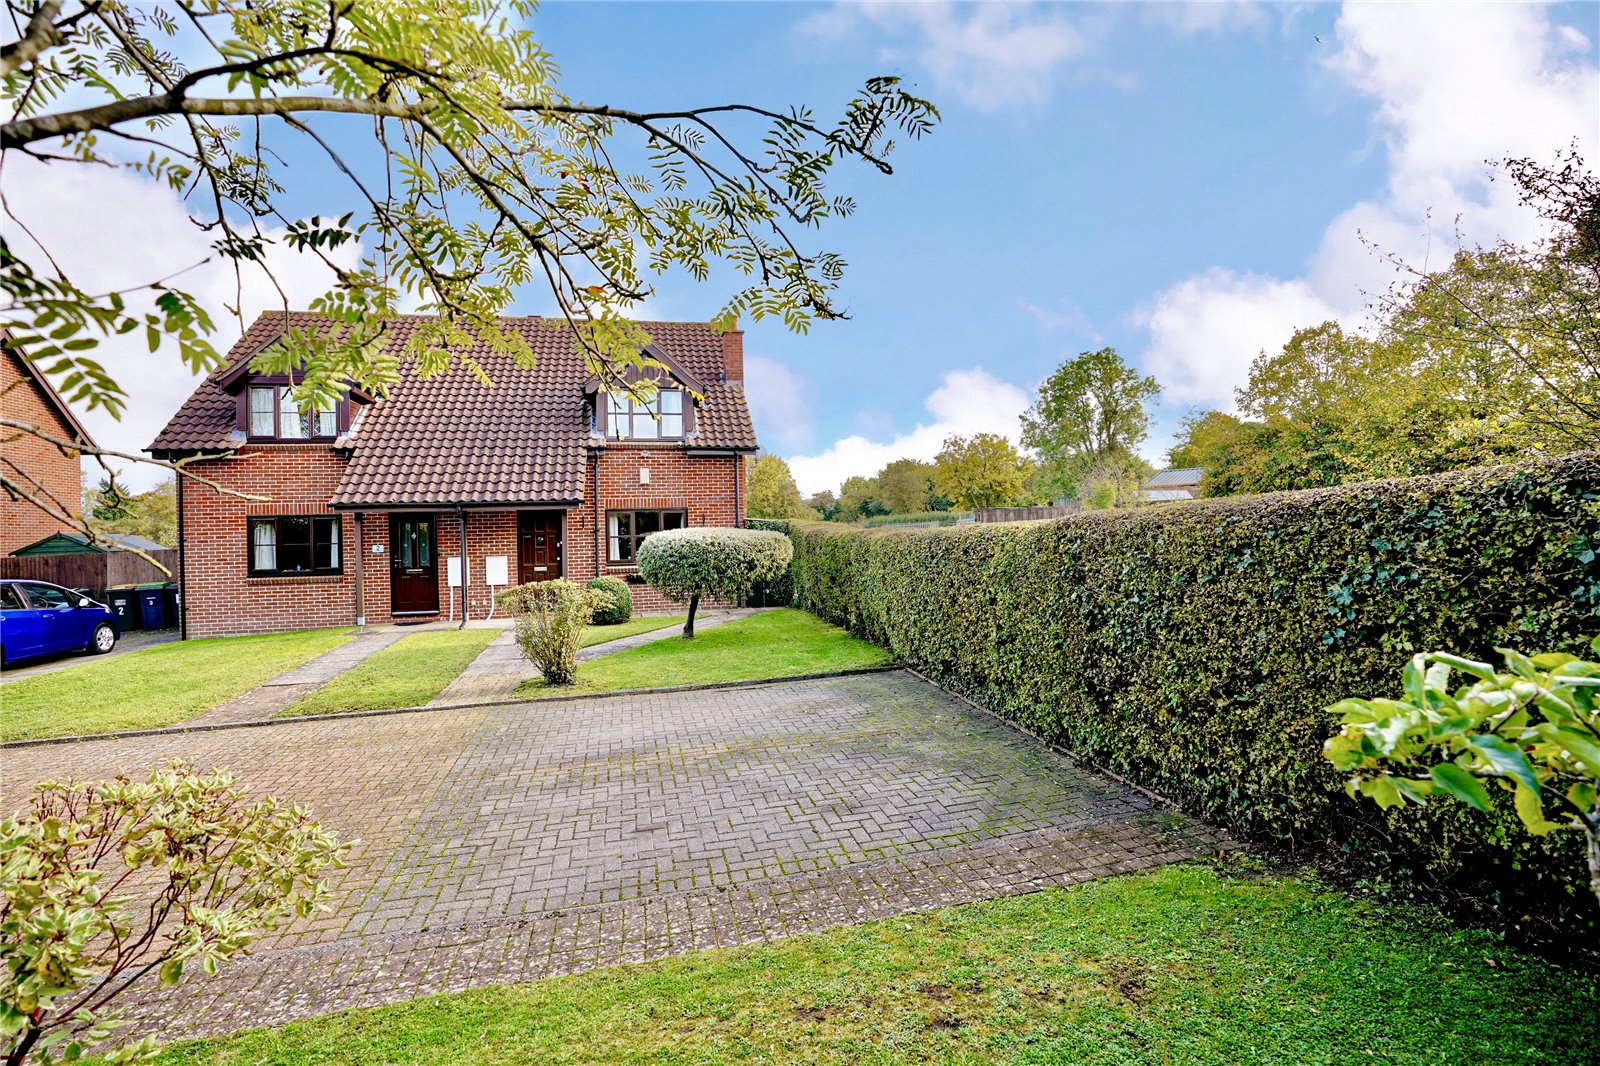 2 bed house for sale in Colmworth, Colley Close, MK44 2HE, MK44